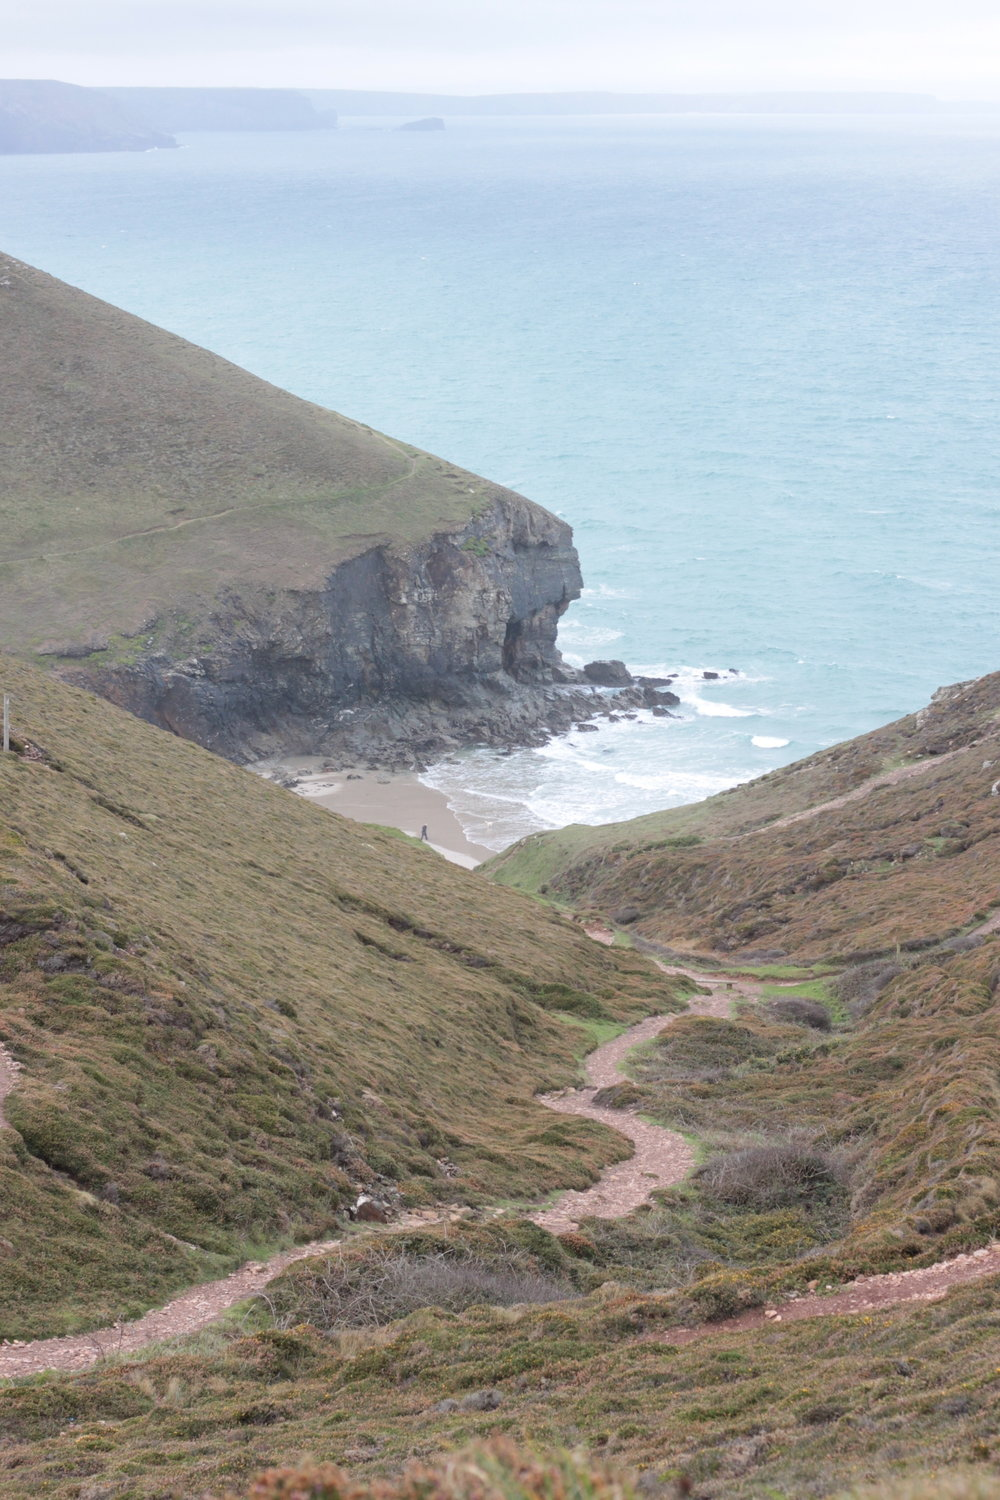 The path down to Chapel Porth Beach.